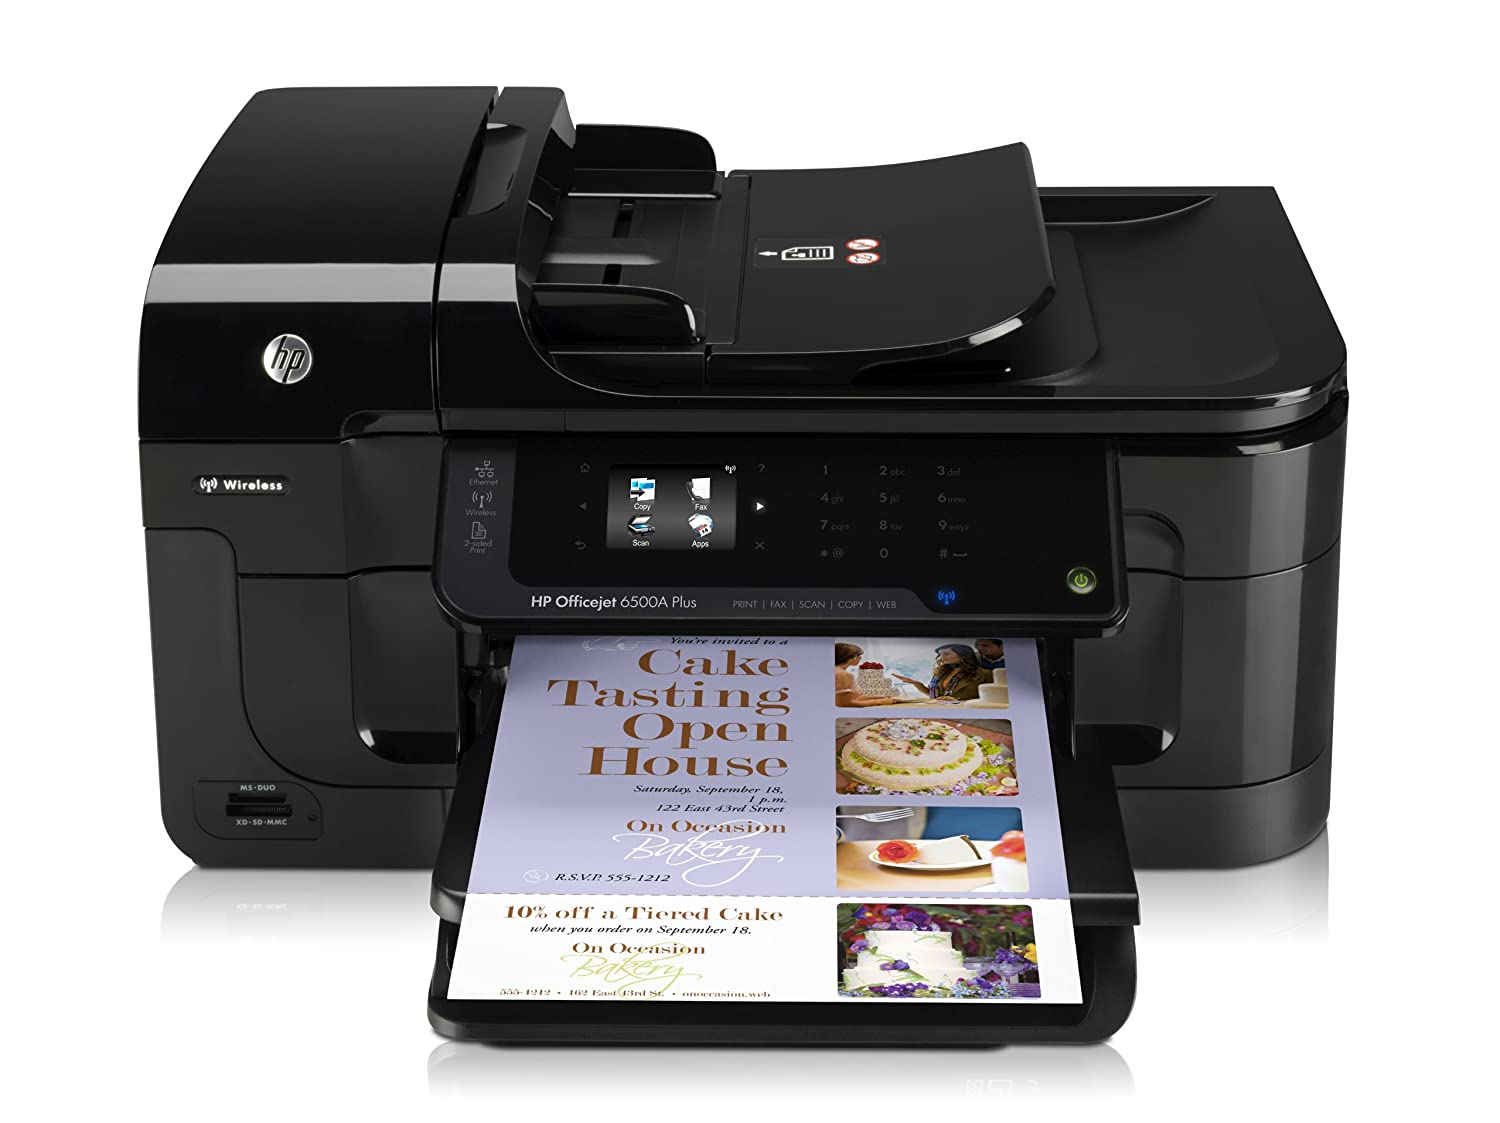 hp officejet 6500a user manual how to troubleshooting manual rh instructionmanualtech today Install HP Officejet 6500 Wireless HP Officejet 6500 Port Cable